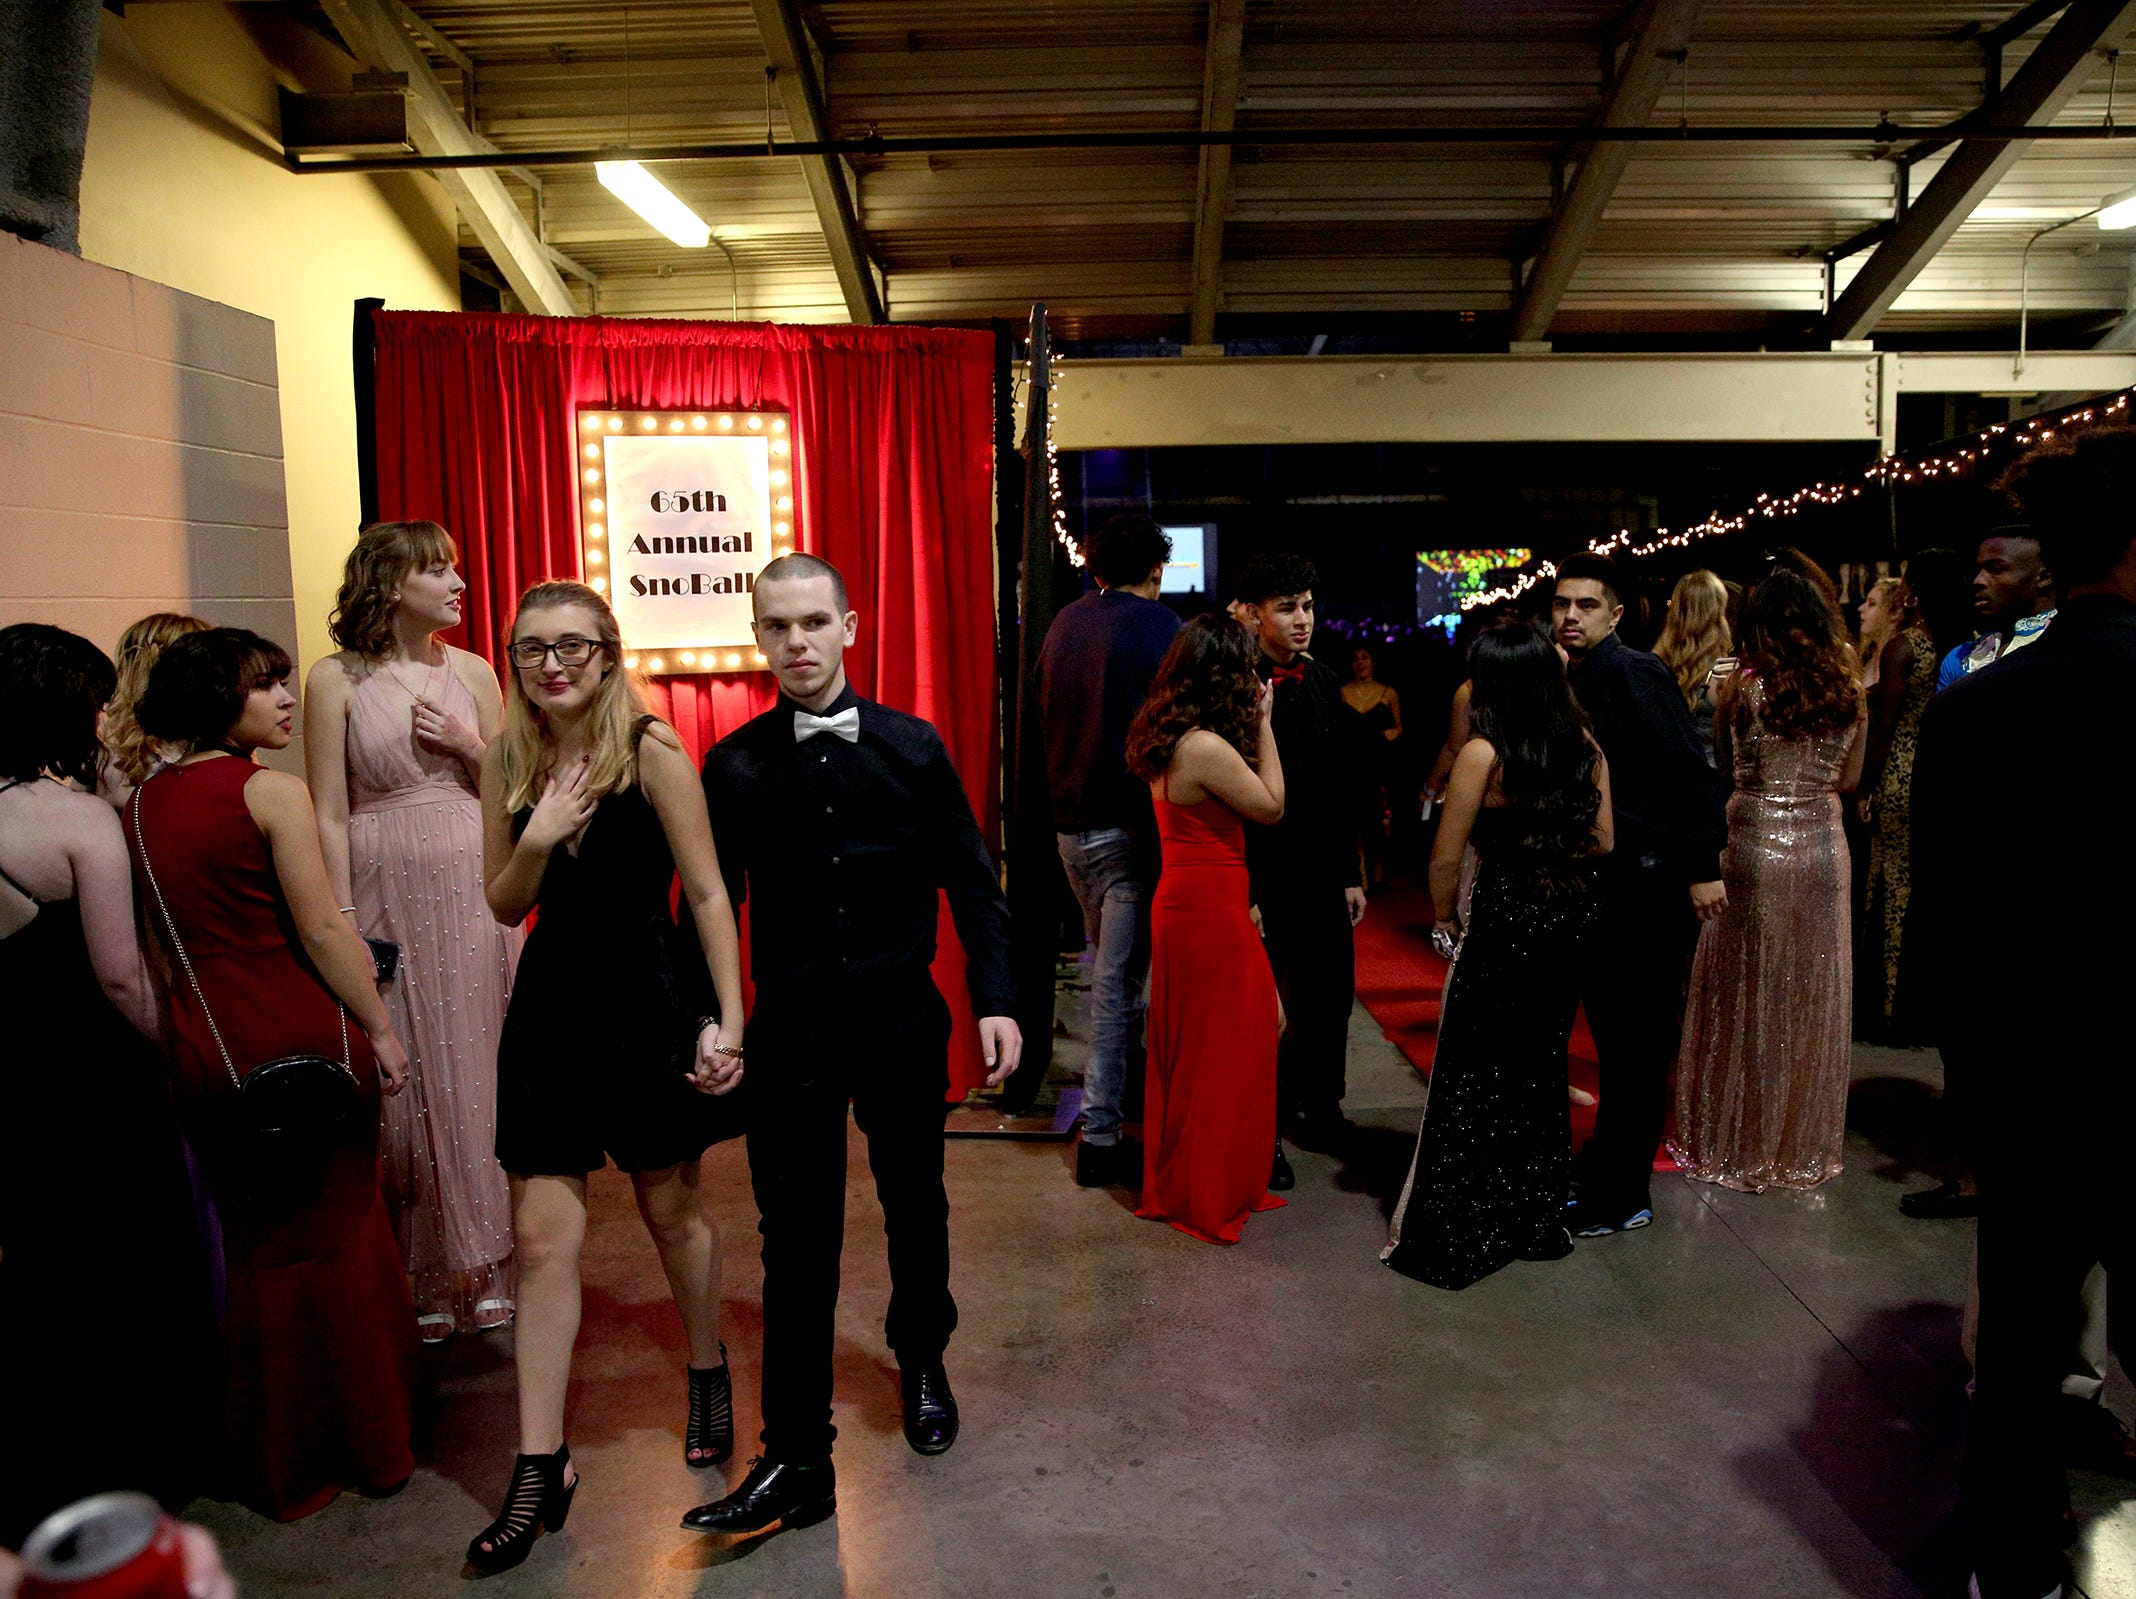 Students hang out in the entrance of the annual SnoBall at the Oregon State Fairgrounds Pavilion in Salem on Saturday, Dec. 1, 2018.